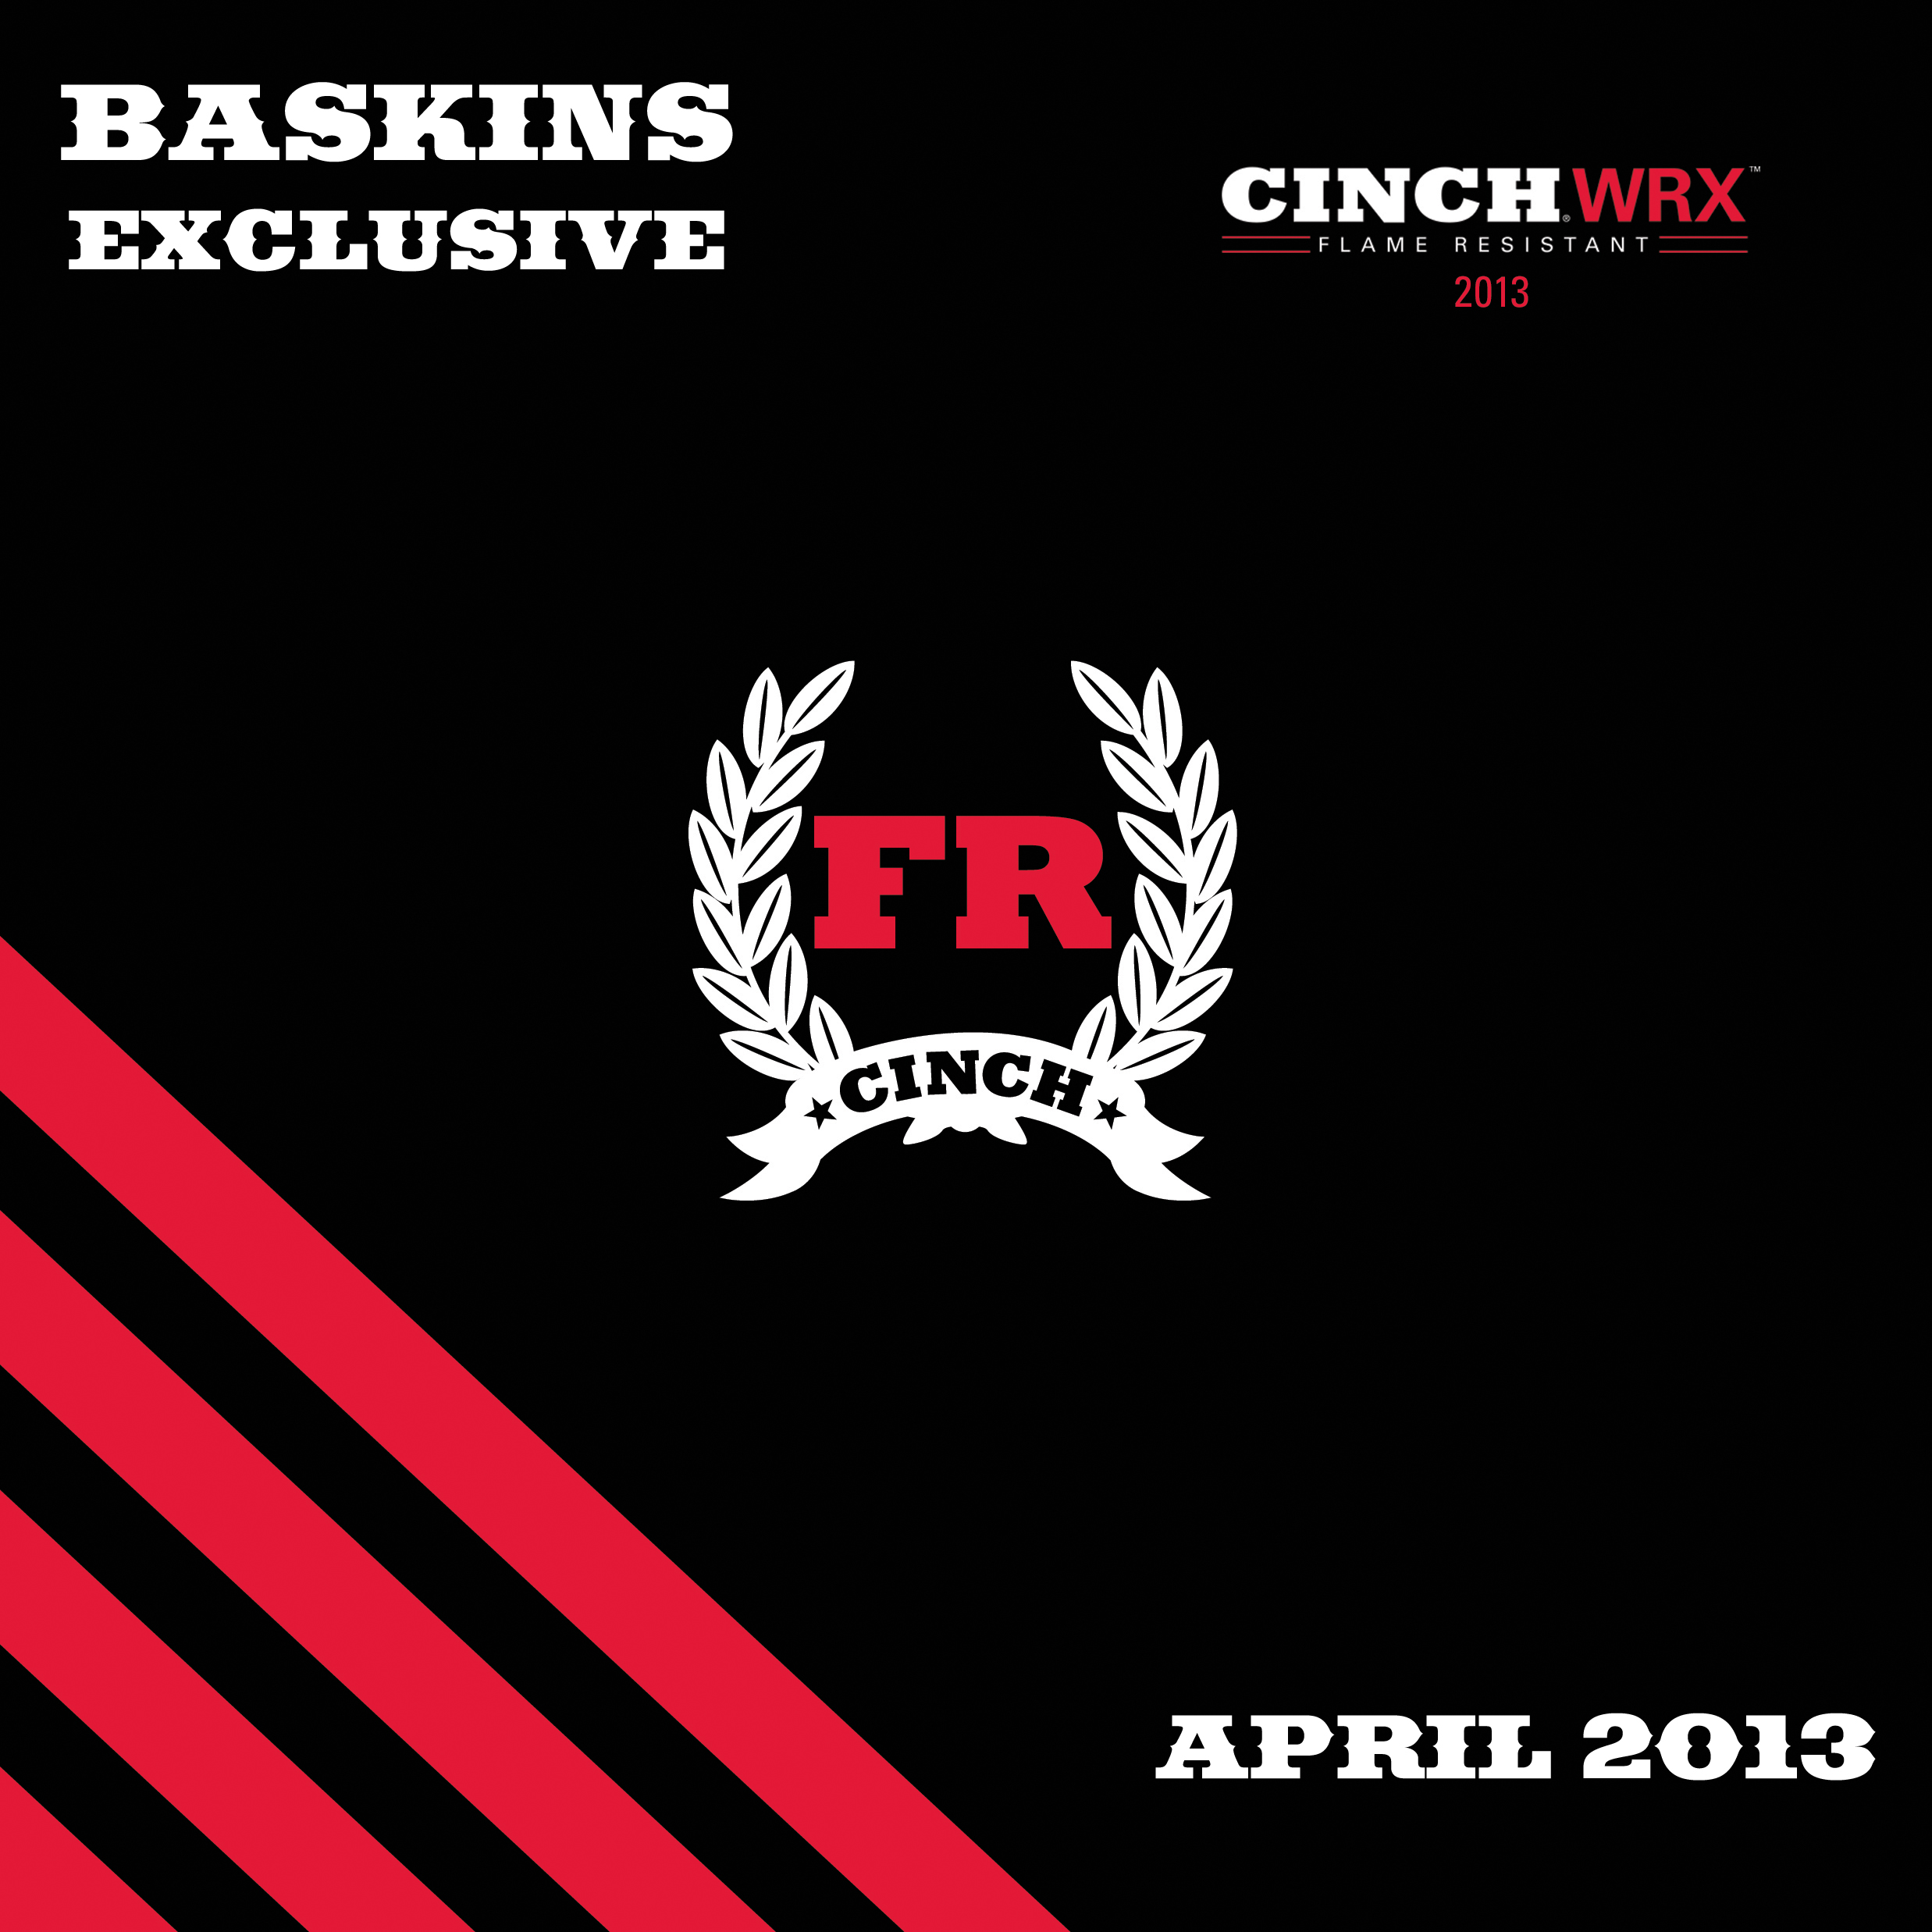 BASKINSEXCLUSIVEFR